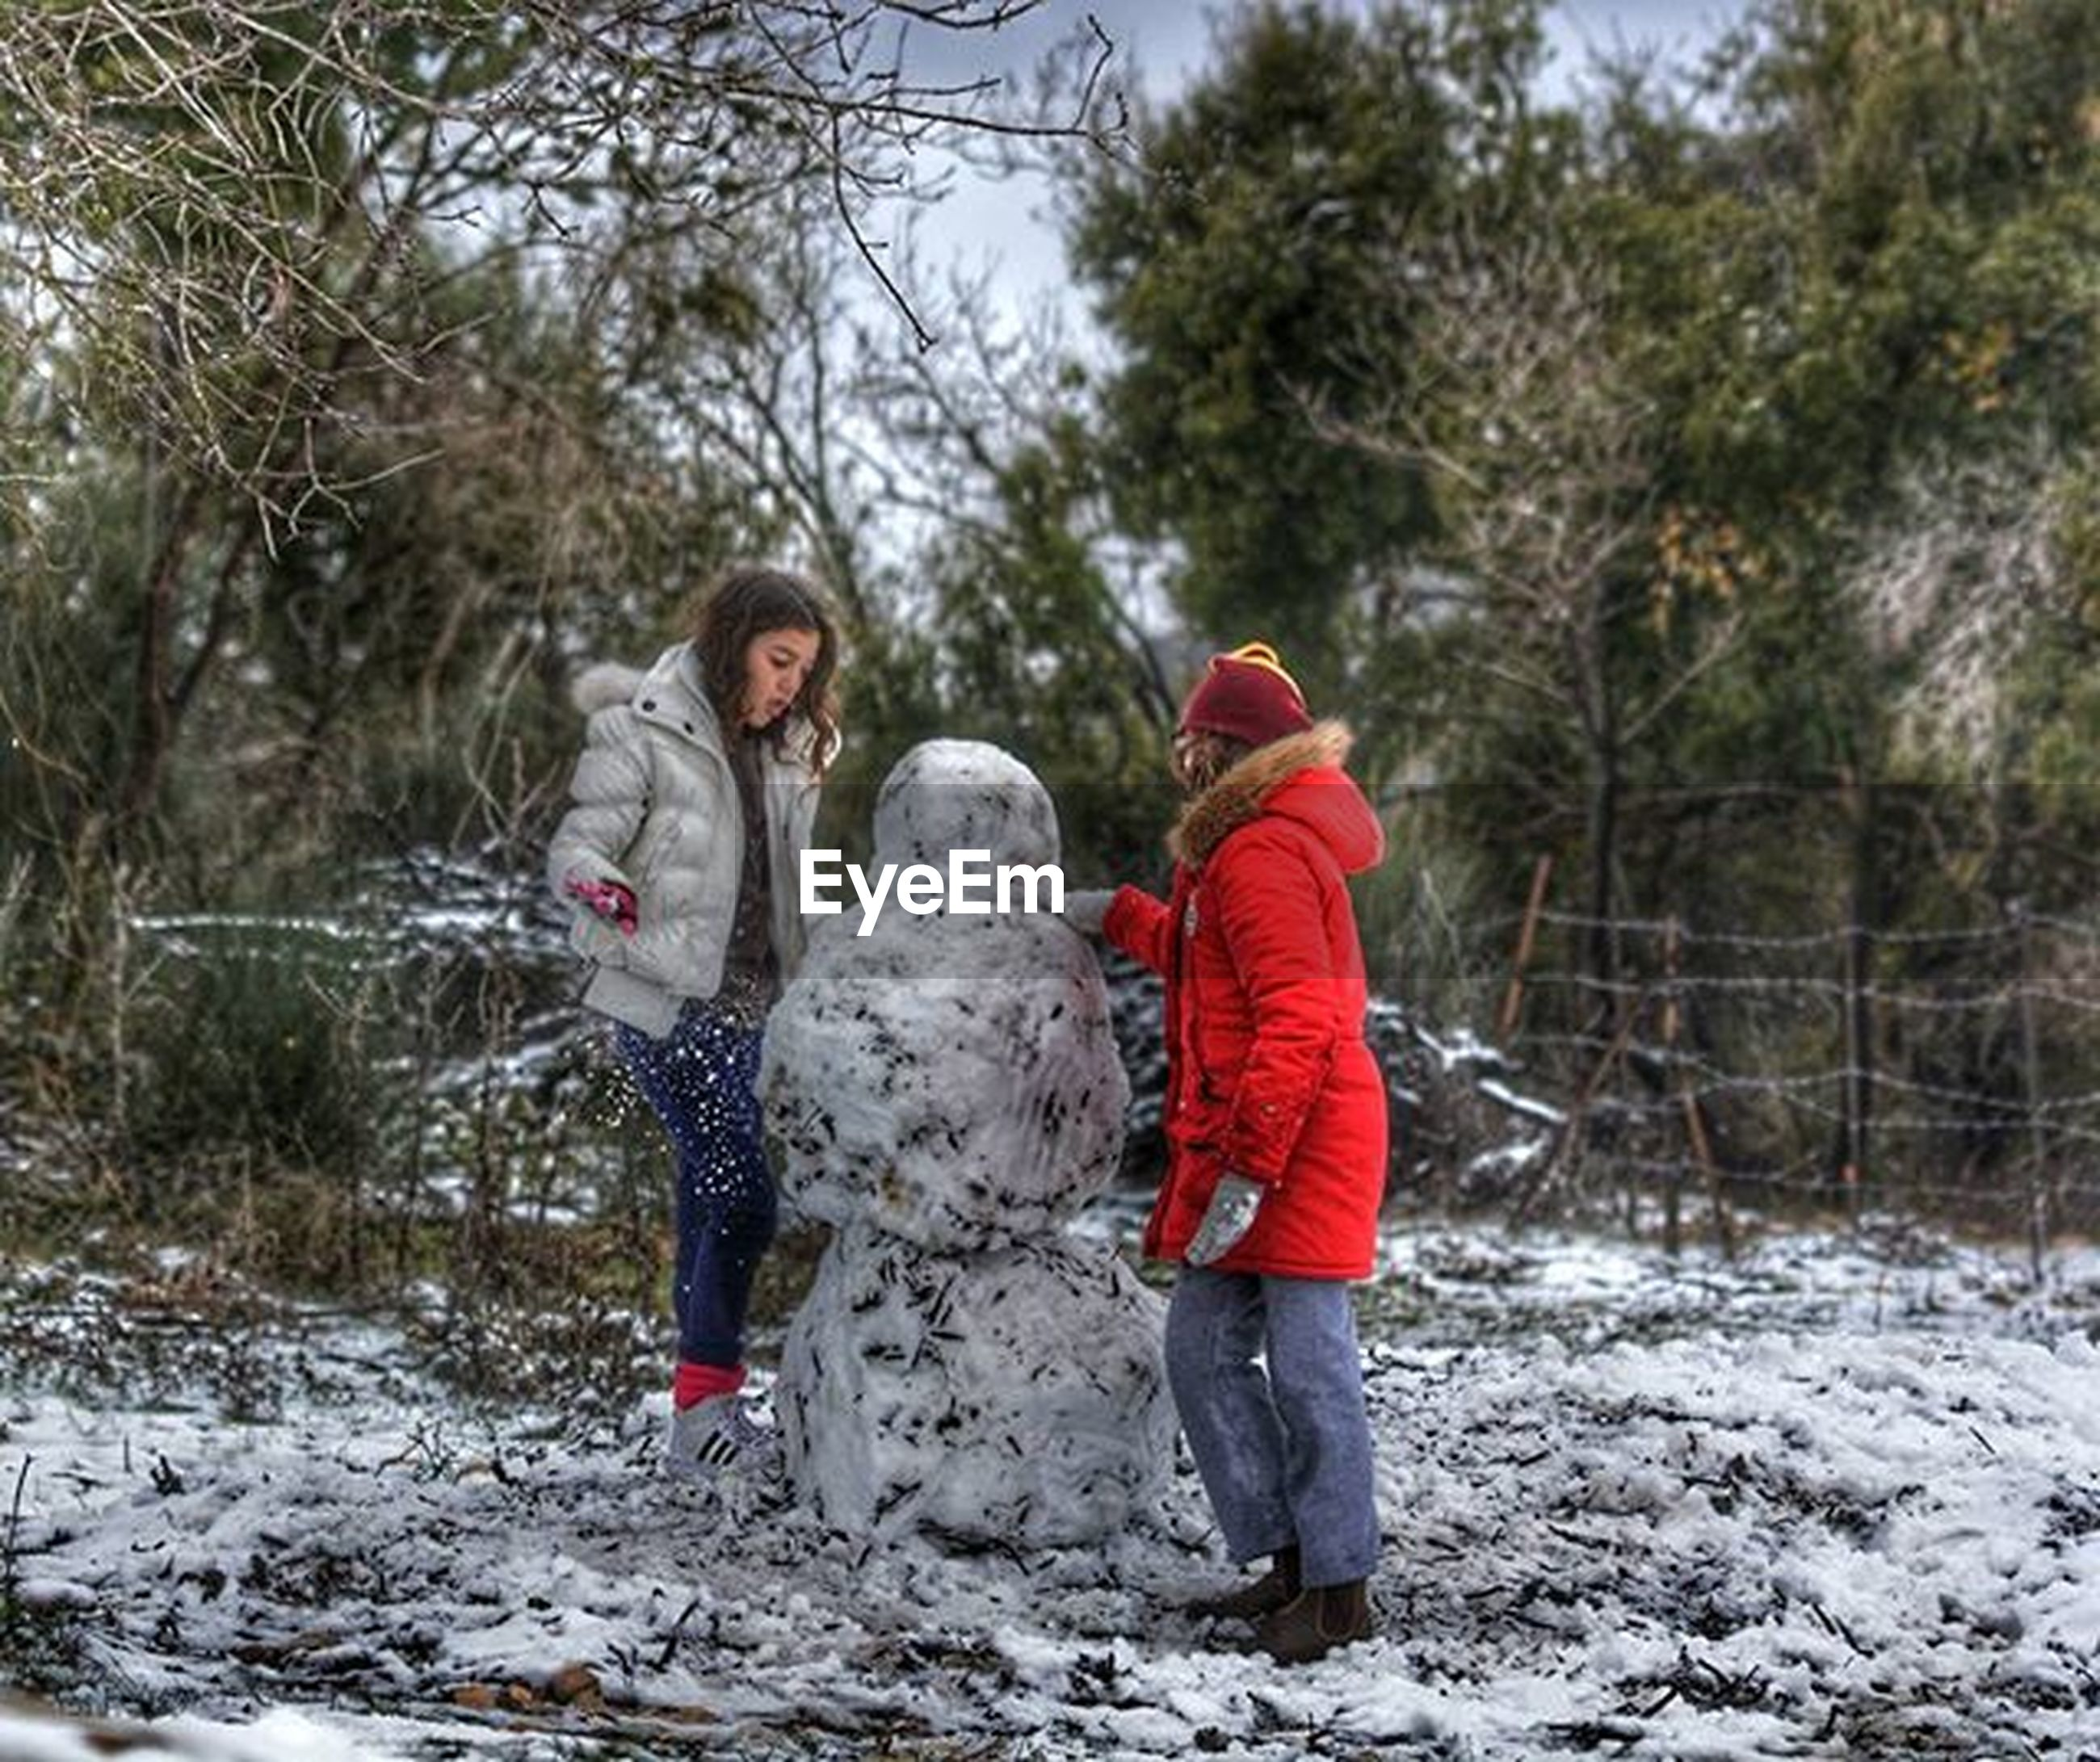 winter, snow, full length, cold temperature, childhood, lifestyles, tree, leisure activity, warm clothing, season, elementary age, boys, togetherness, girls, casual clothing, person, rear view